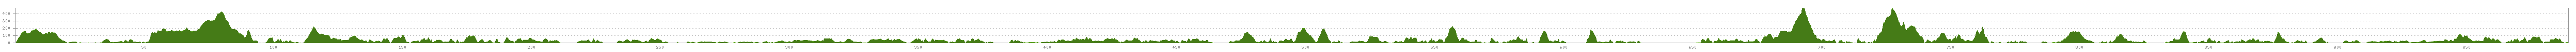 Elevation profile Cycle Route Coastroute Trondheim-Bergen